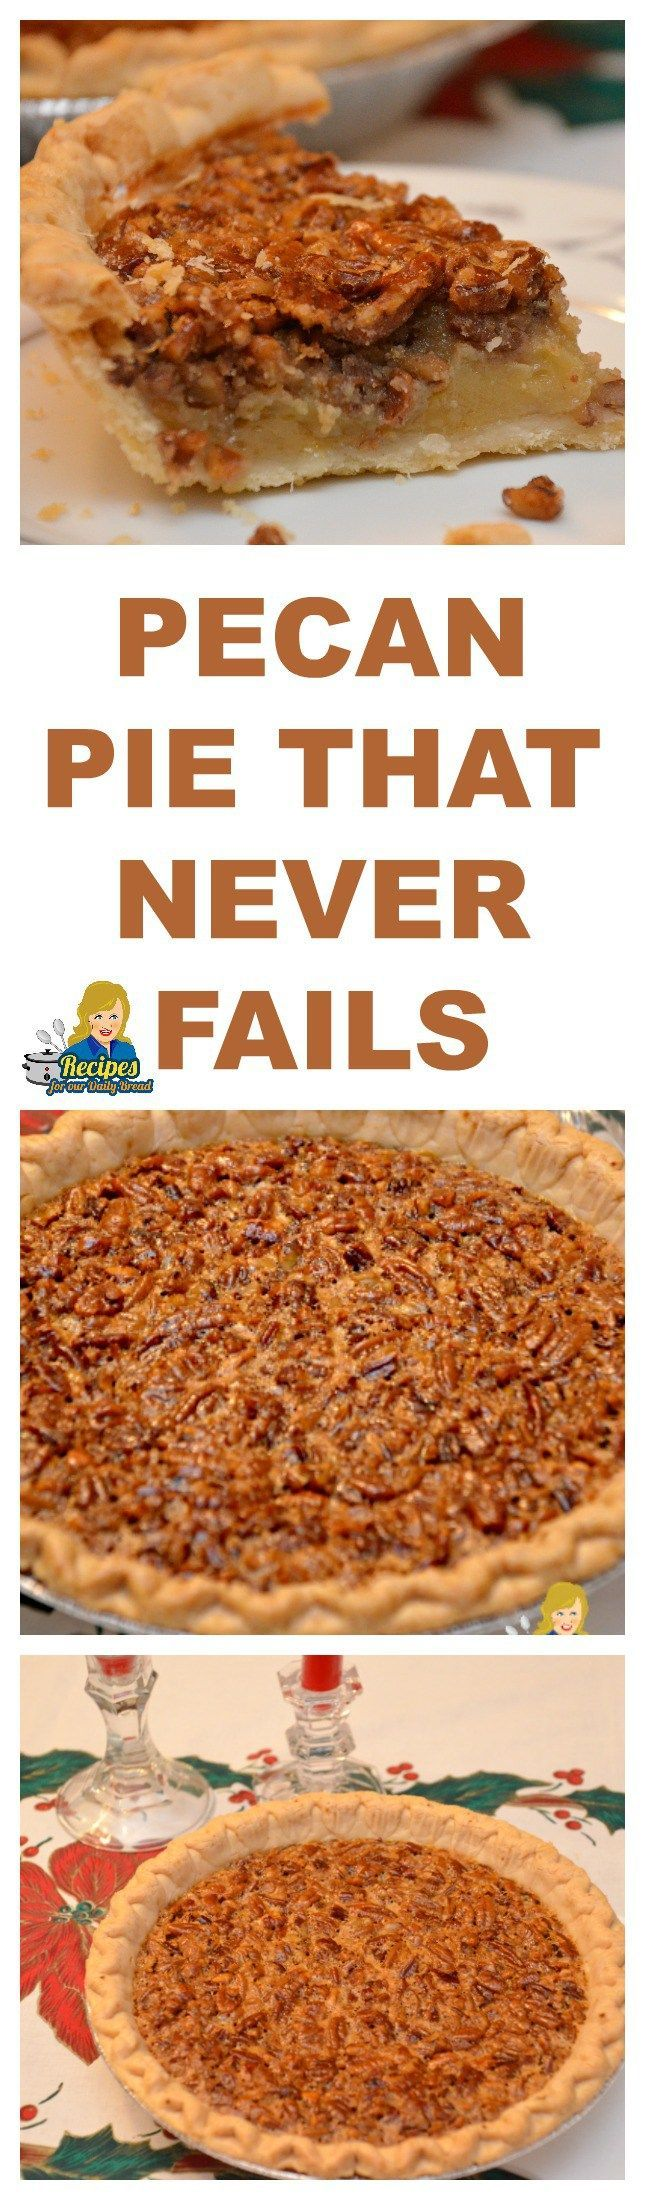 PECAN PIE THAT NEVER FAILS - EASY SOUTHERN PIE This recipe is a classic Southern…                                                                                                                                                     More